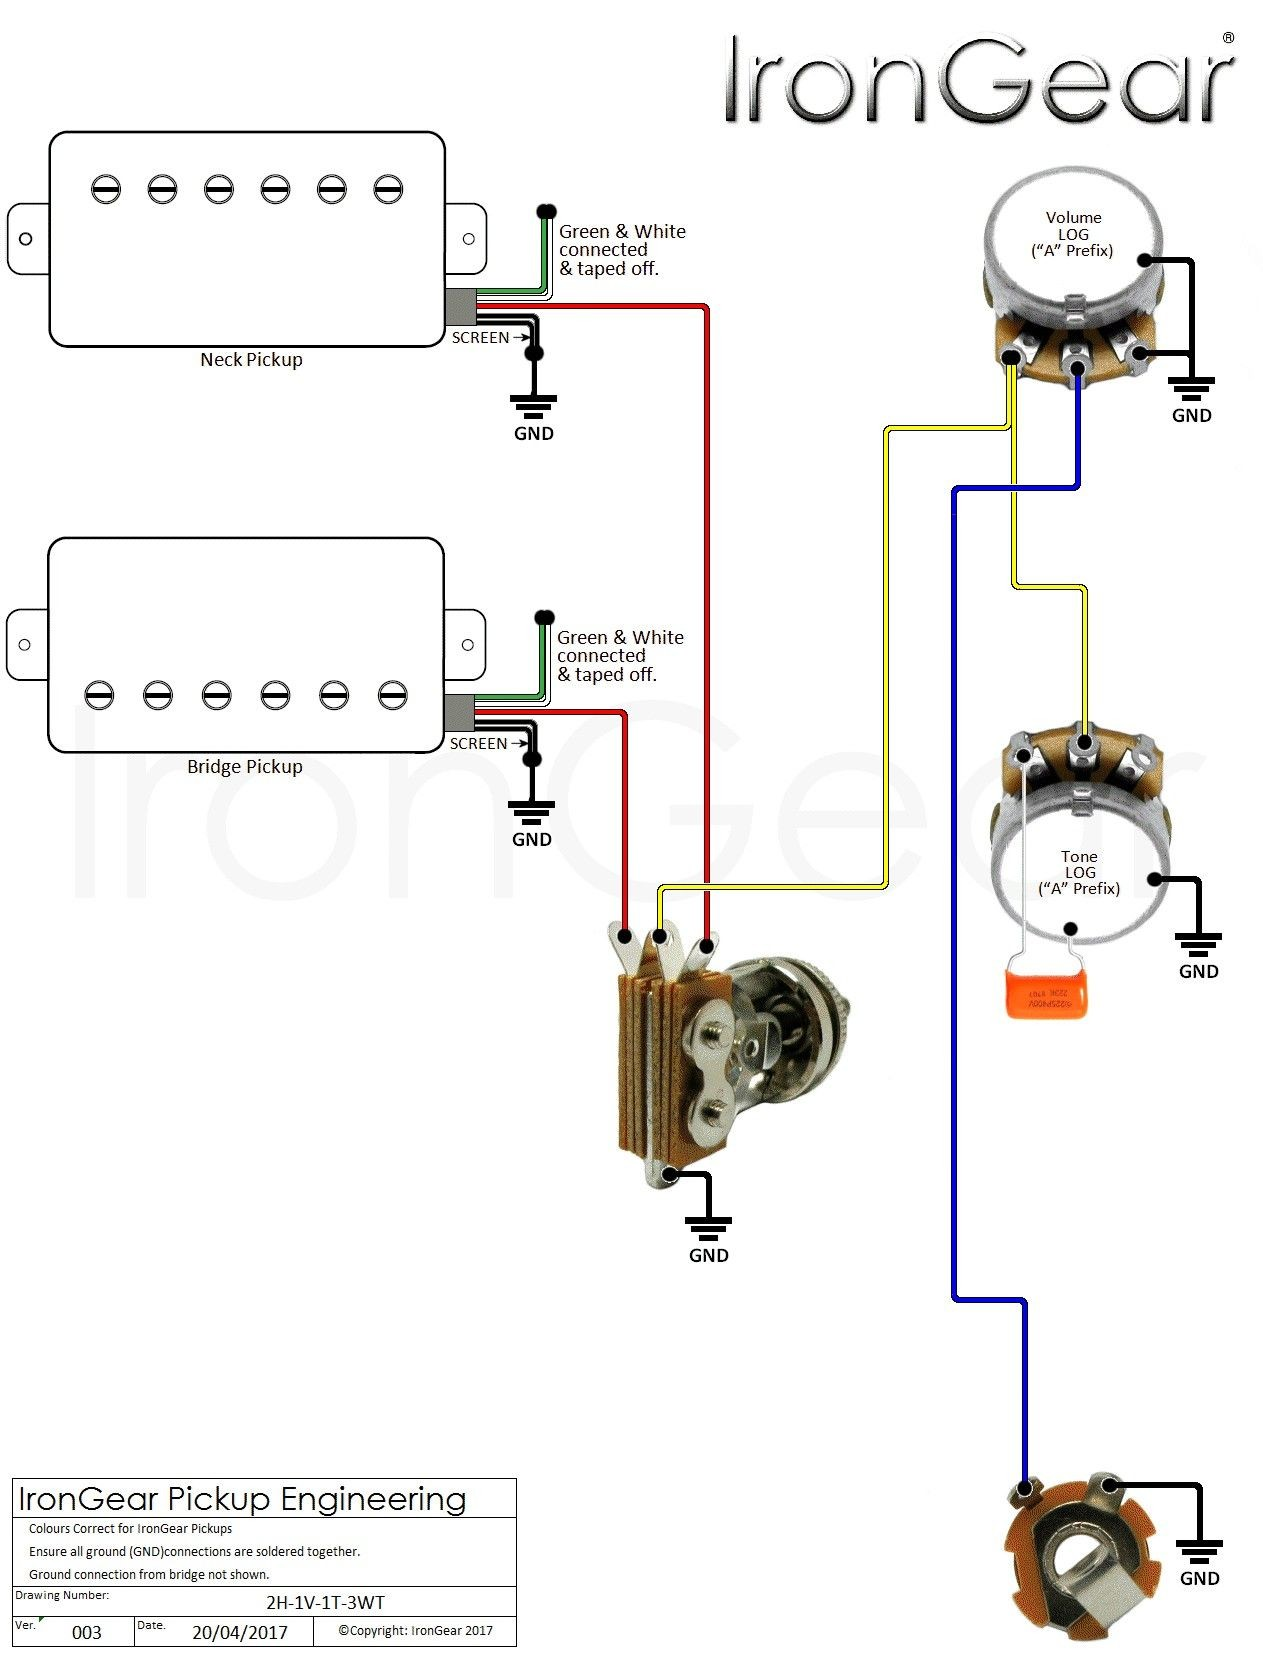 Gibson 3 Way Switch Wiring New Katolight Generator Wiring Diagram Of Gibson 3 Way Switch Wiring Wiring Diagrams for Guitars